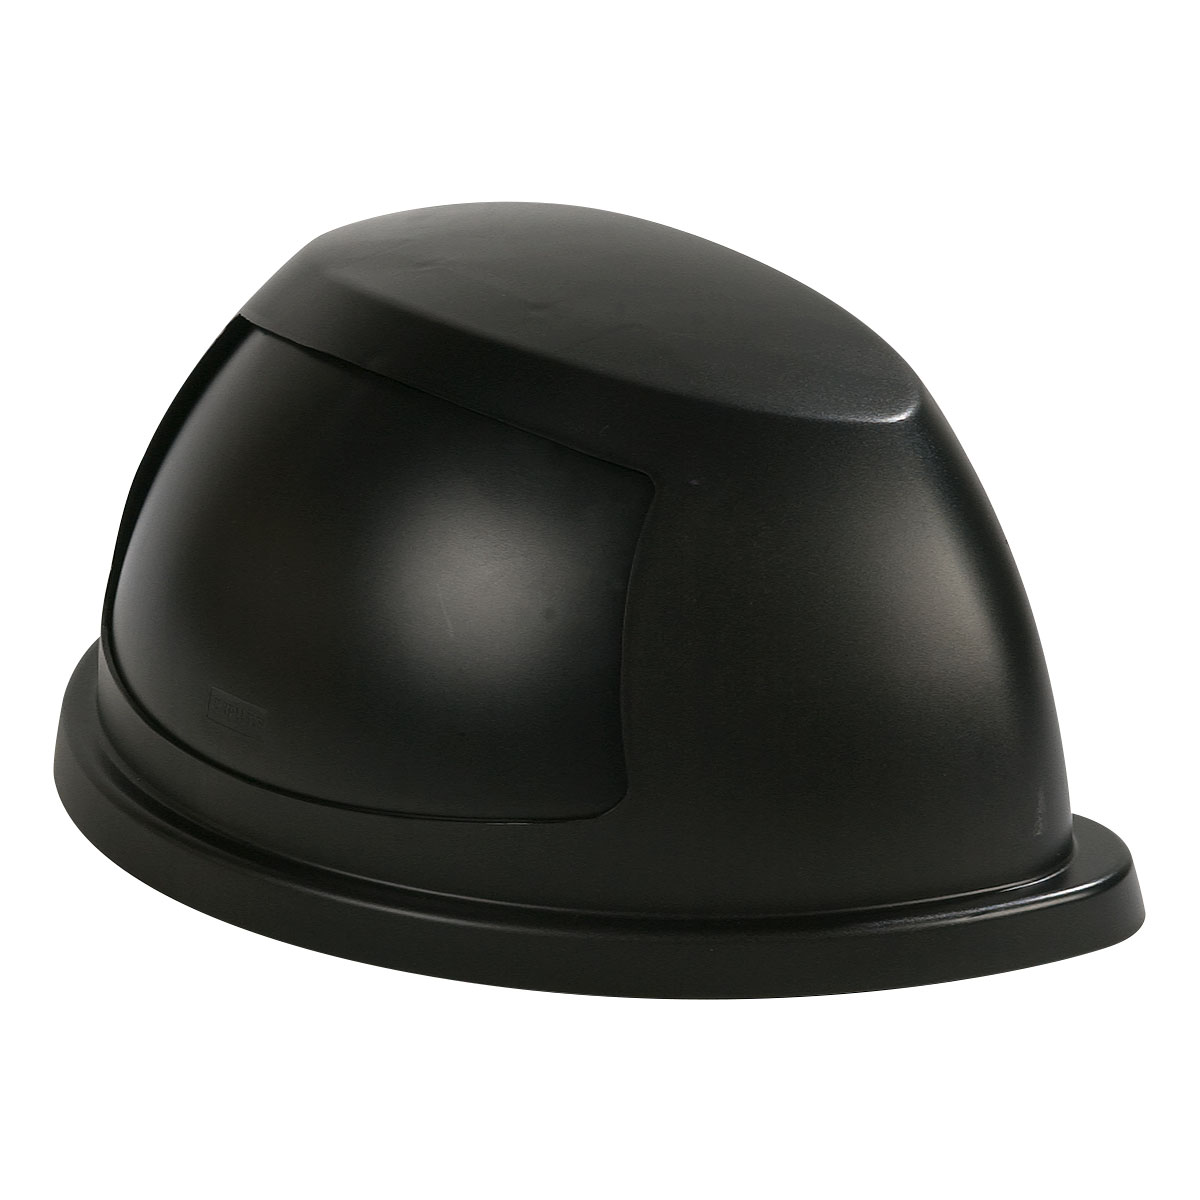 Carlisle 343022-03 Half Round Dome Trash Can Lid - Plastic, Black